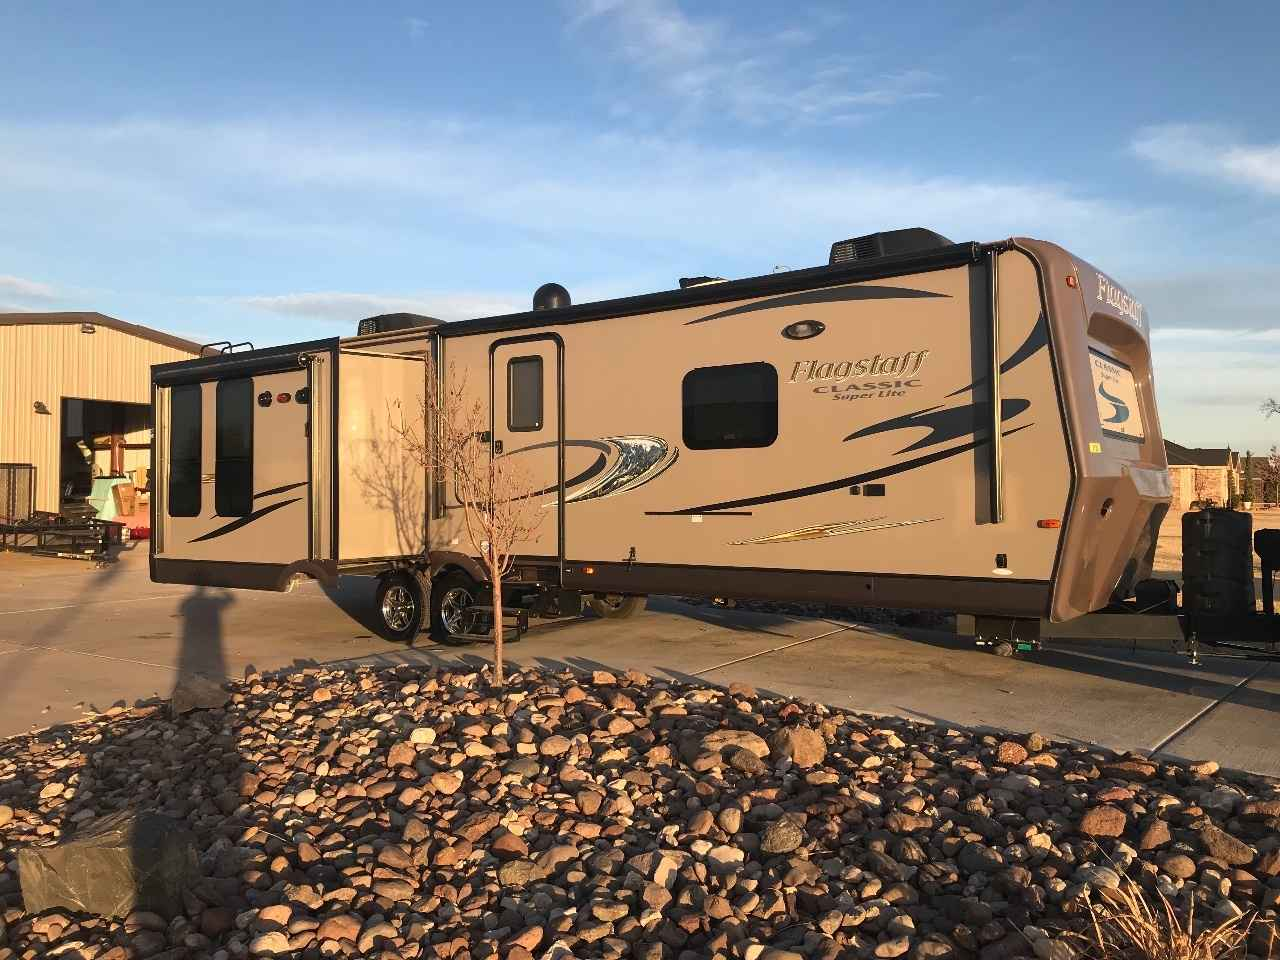 2015 Used Forest River Flagstaff Super Lite 832ikbs Travel